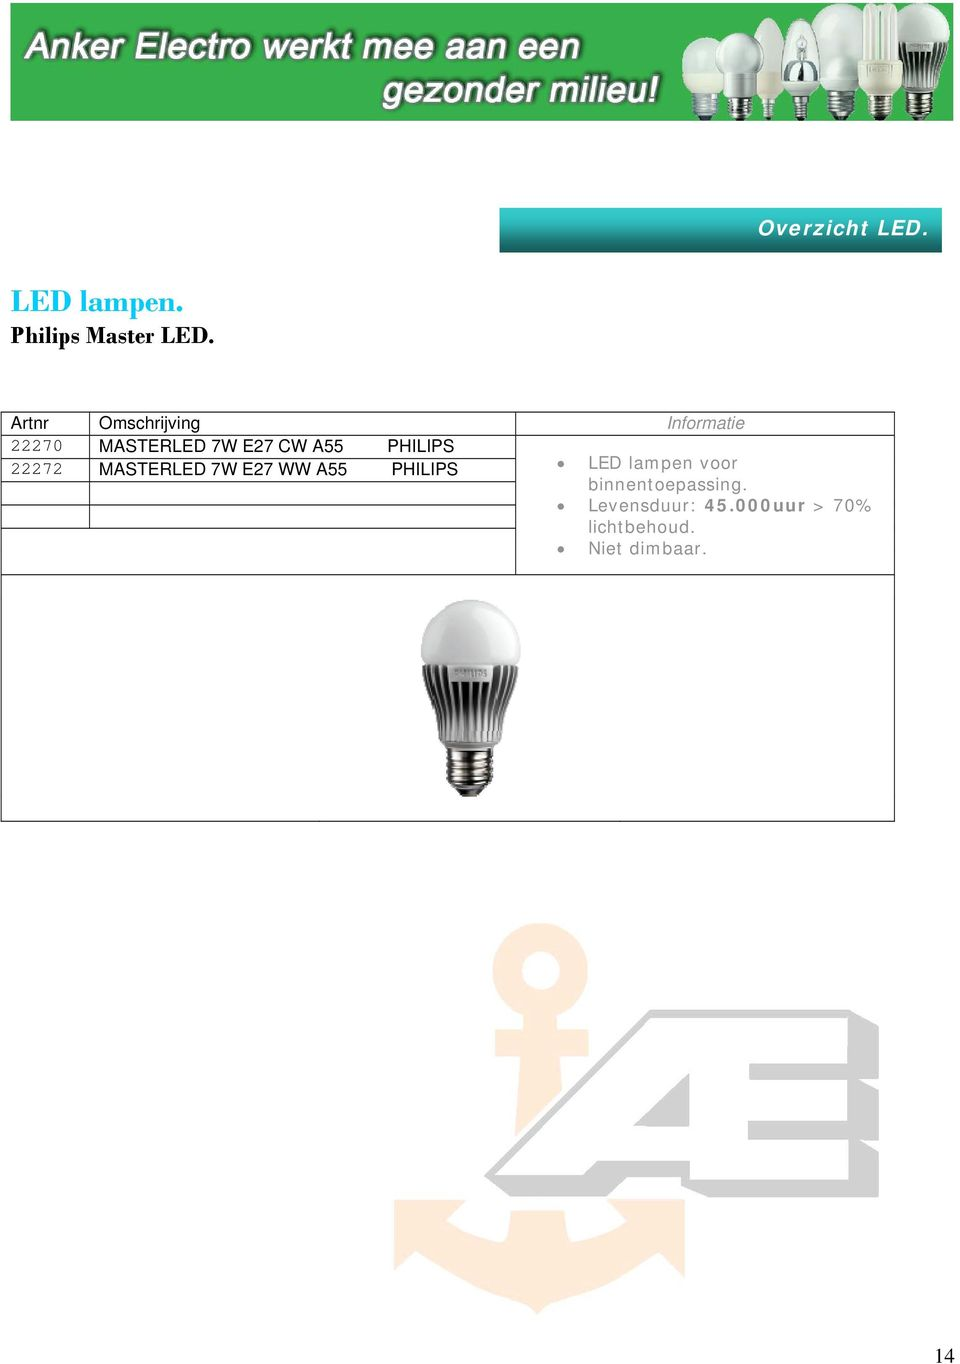 PHILIPS 22272 MASTERLED 7W E27 WW A55 PHILIPS LED lampen